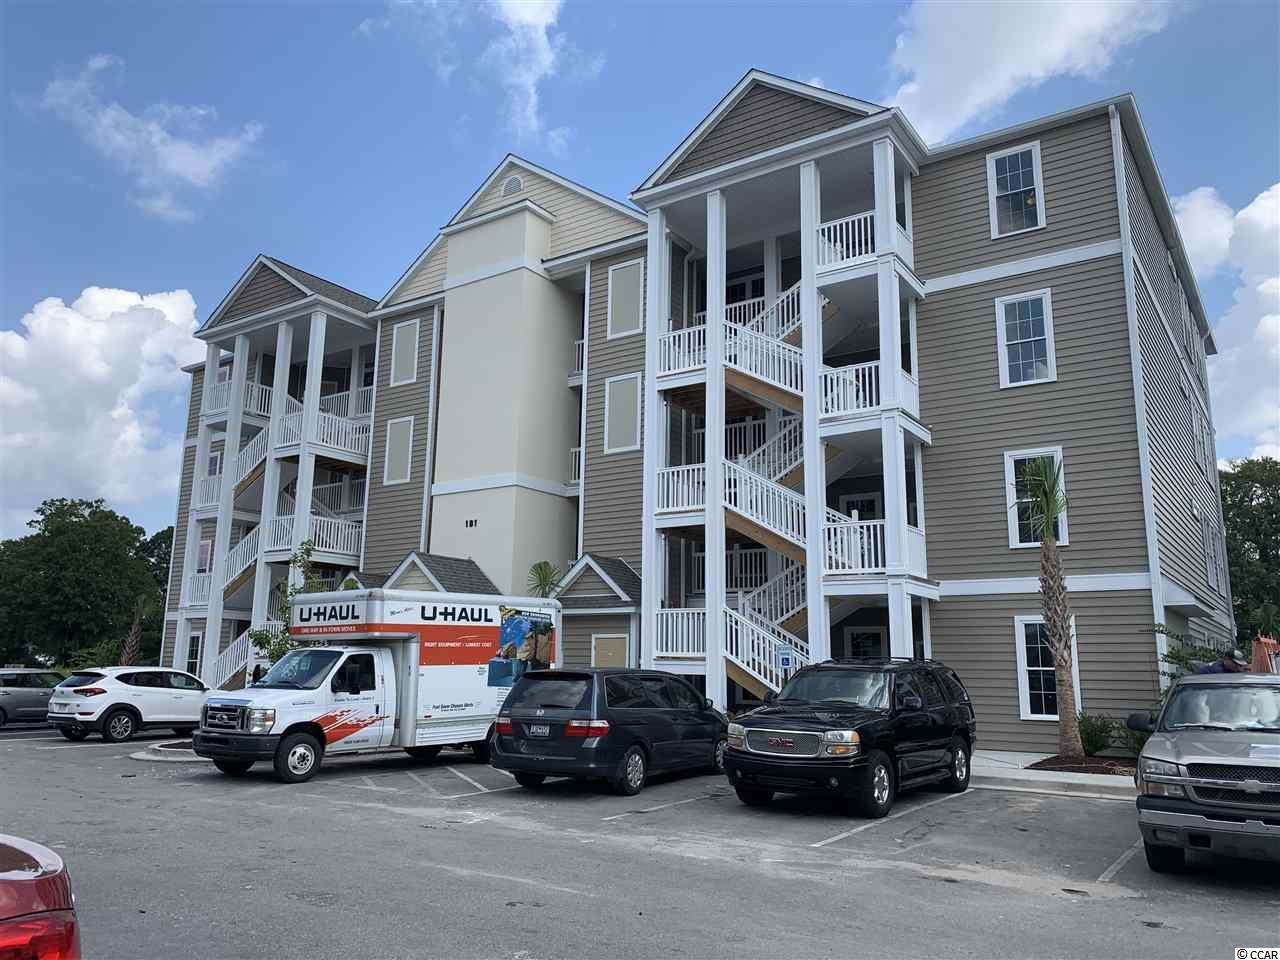 Located in one of the most successful condo developments in the Myrtle Beach area, this second floor unit is a 2 bedroom 2 bathroom beautiful condo in the very popular Queens Harbour! Building has an oversized ELEVATOR to all floors, outside storage, split bedroom floor plans with entry to the Master Suite from the Family Room, 9' smooth ceilings and a screen porch. The location is superb with shopping, dining and recreation steps away. The amenity package includes a resort style swimming pool with a club house and conveniently located picnic areas with barbecues.